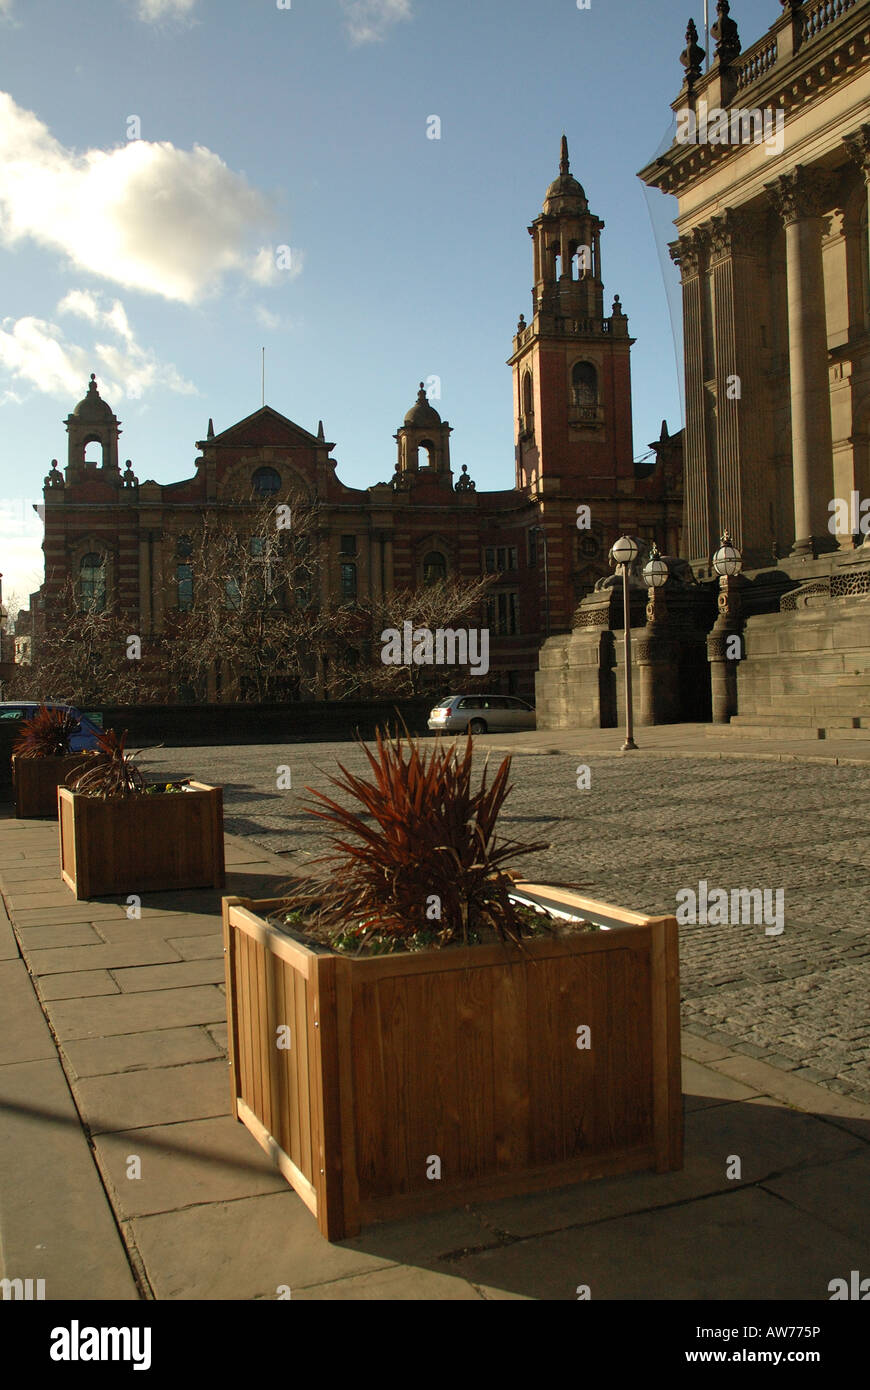 Oxford Place Methodist Centre from the steps of Leeds Town Hall - Stock Image